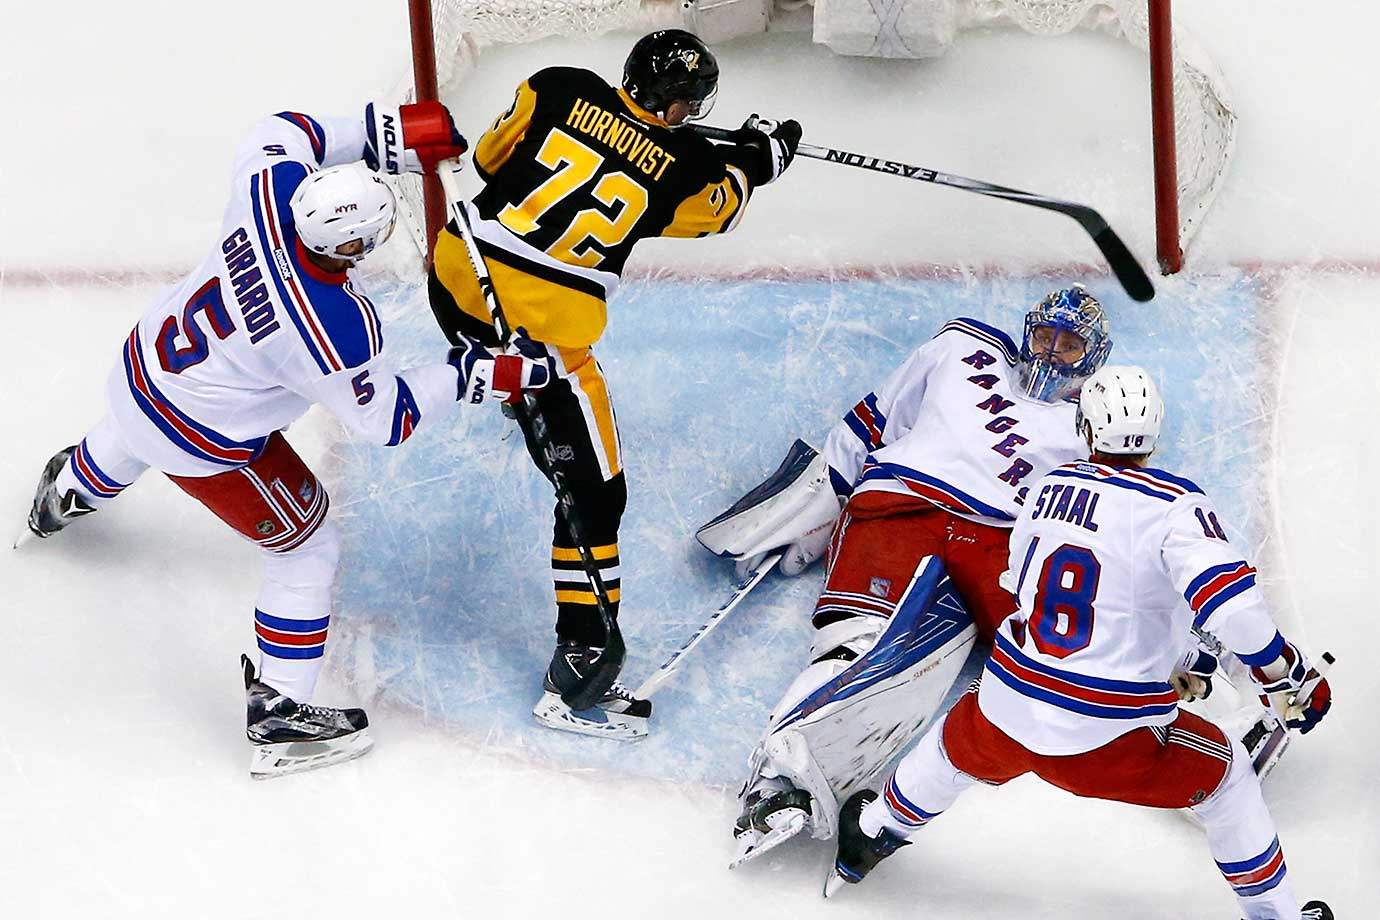 New York Rangers goalie Henrik Lundqvist lies on the puck in the goal crease with Patric Hornqvist looking for a rebound.